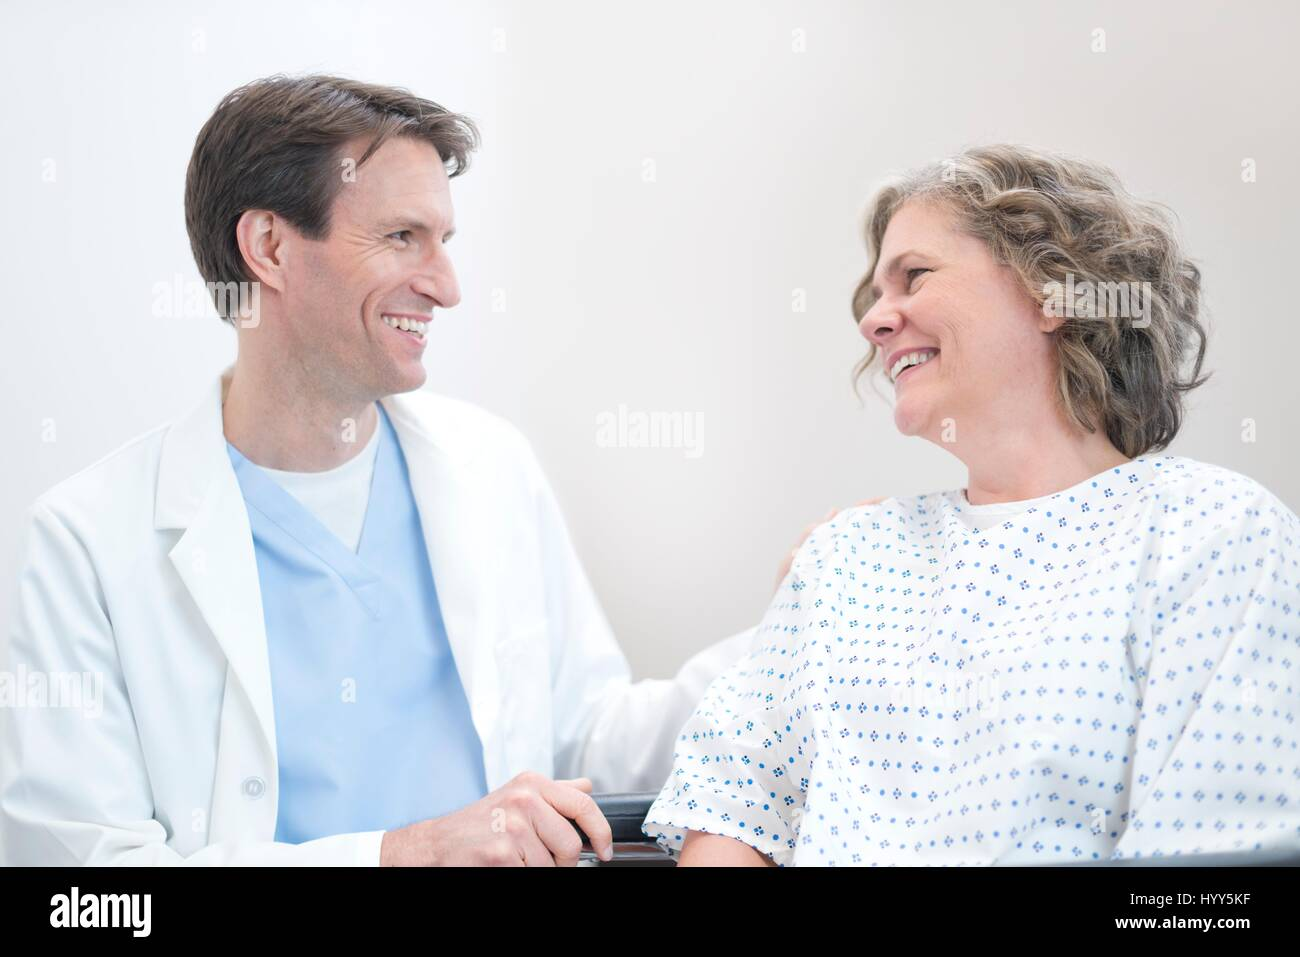 Male doctor smiling at mature female patient. - Stock Image